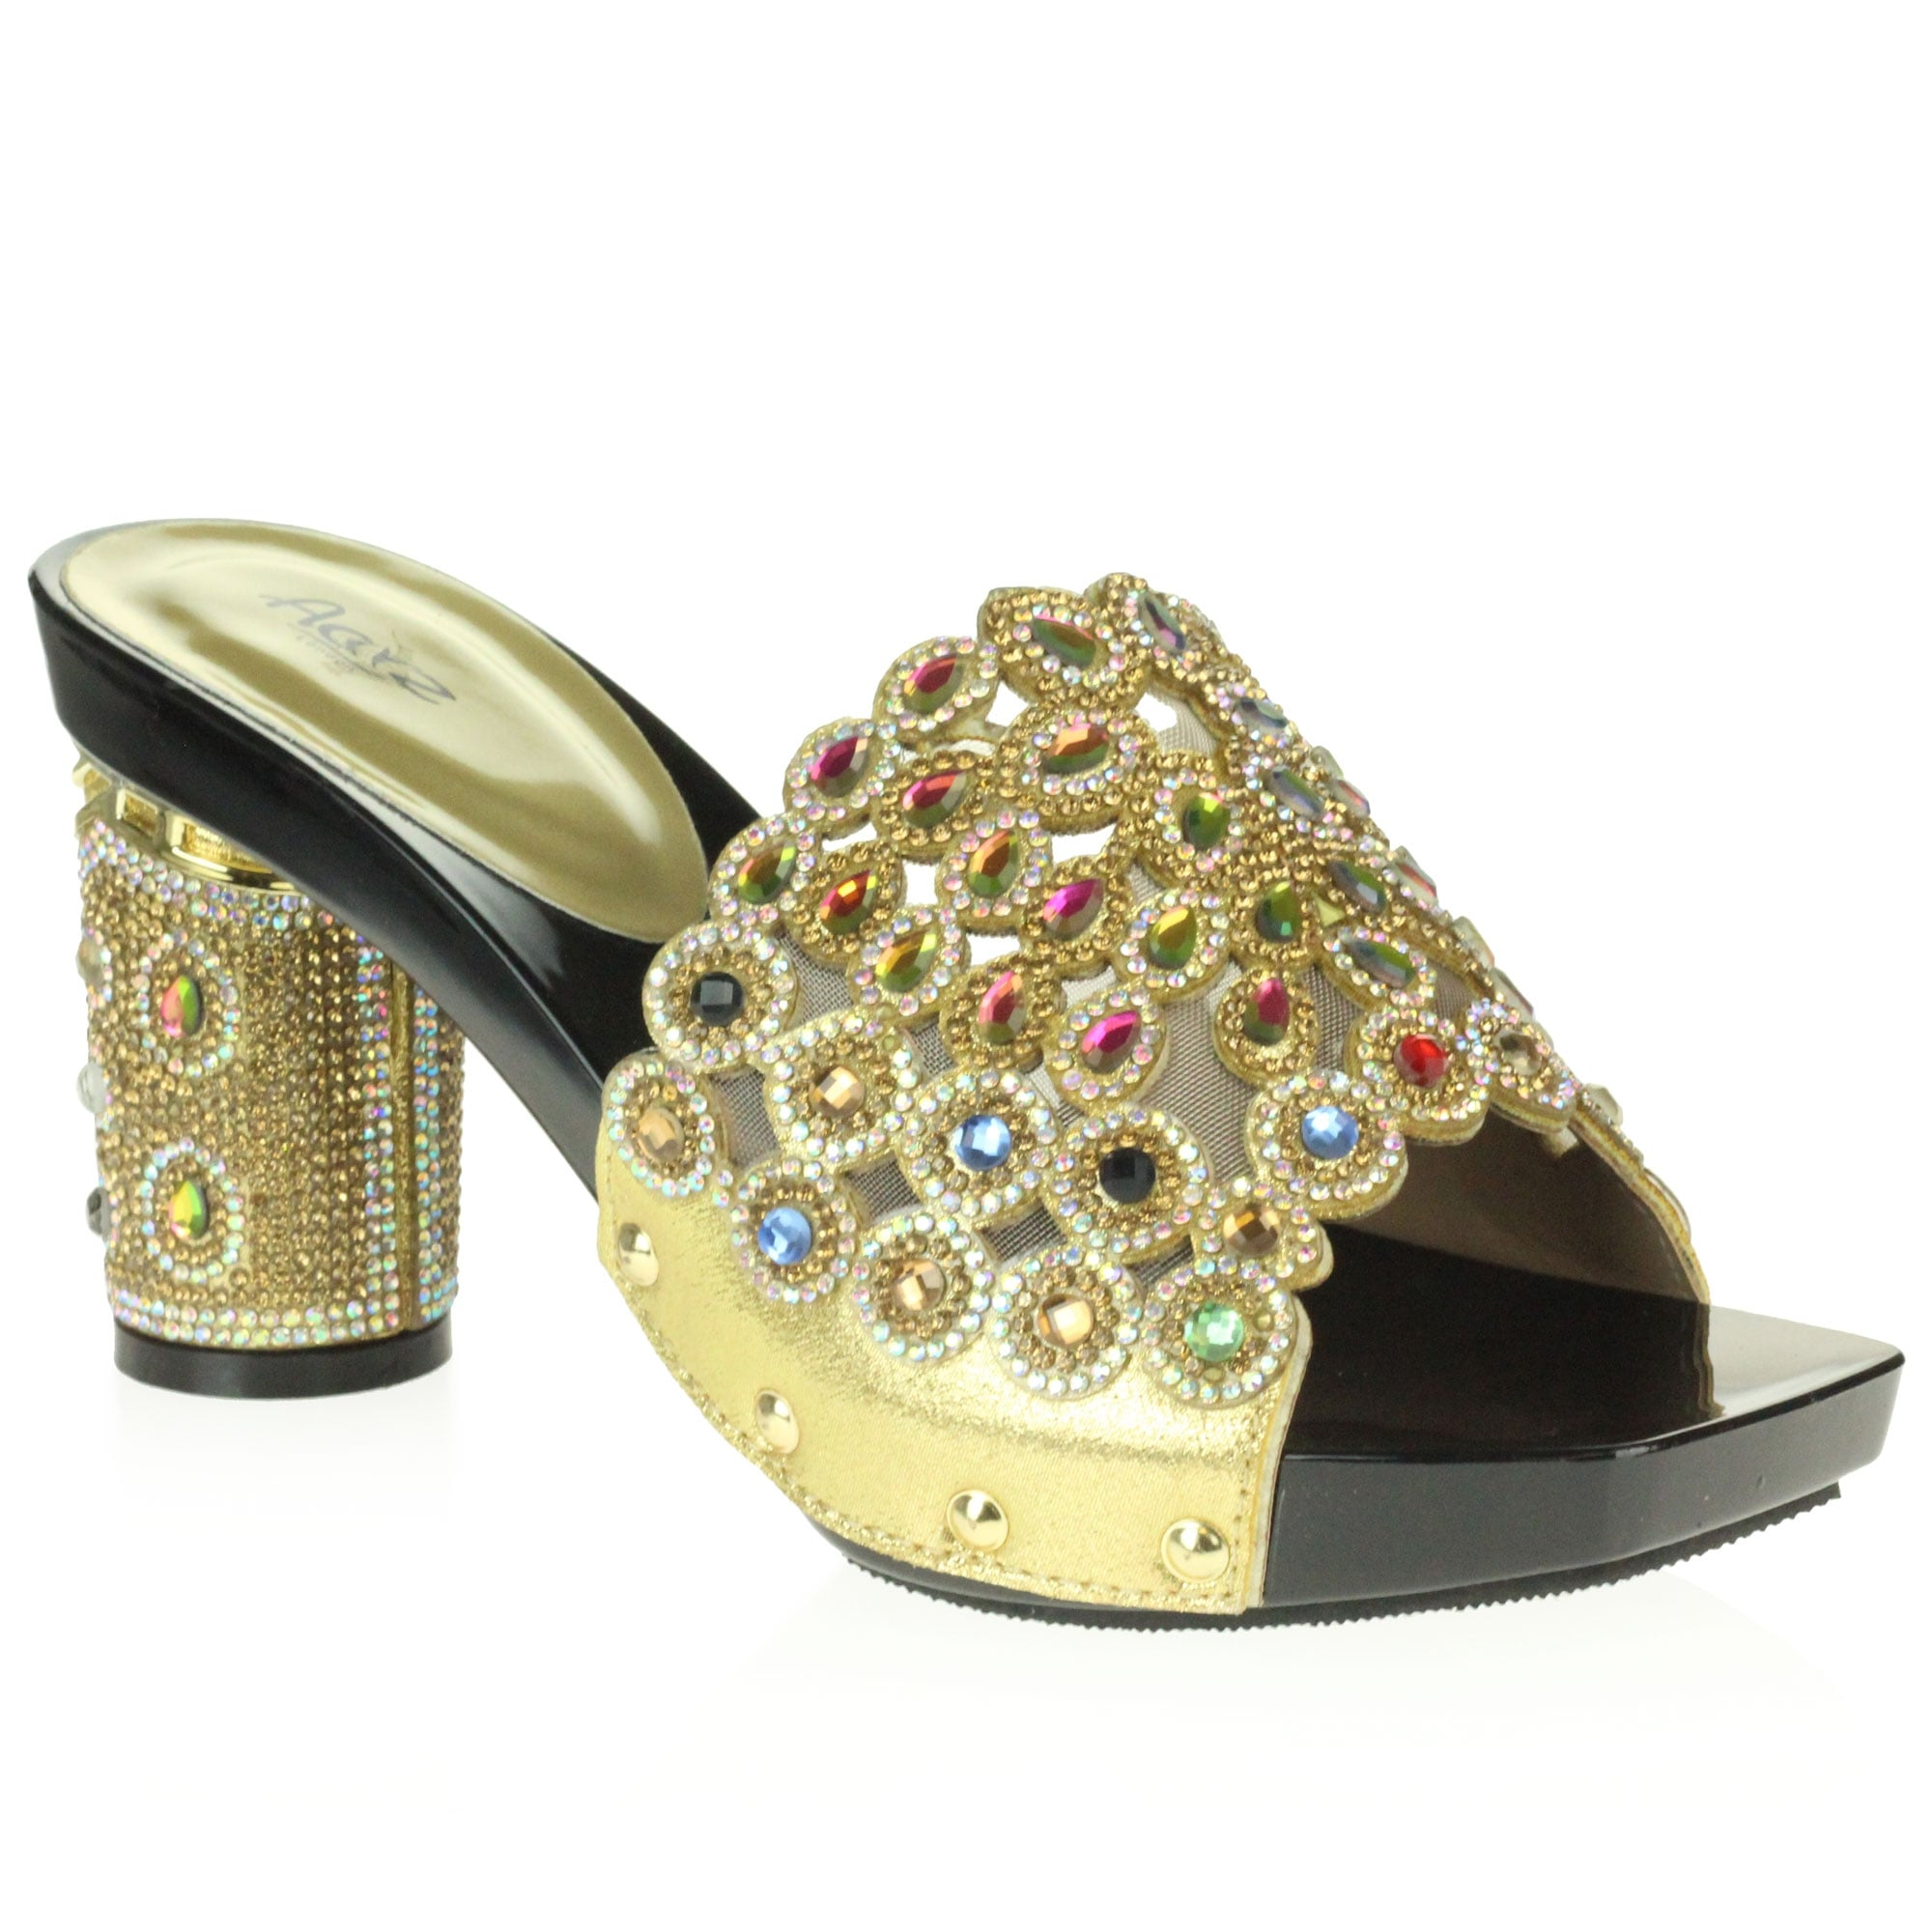 65f6be2ccbc Aarz London Brenna- Embellished Crystal Block-heels